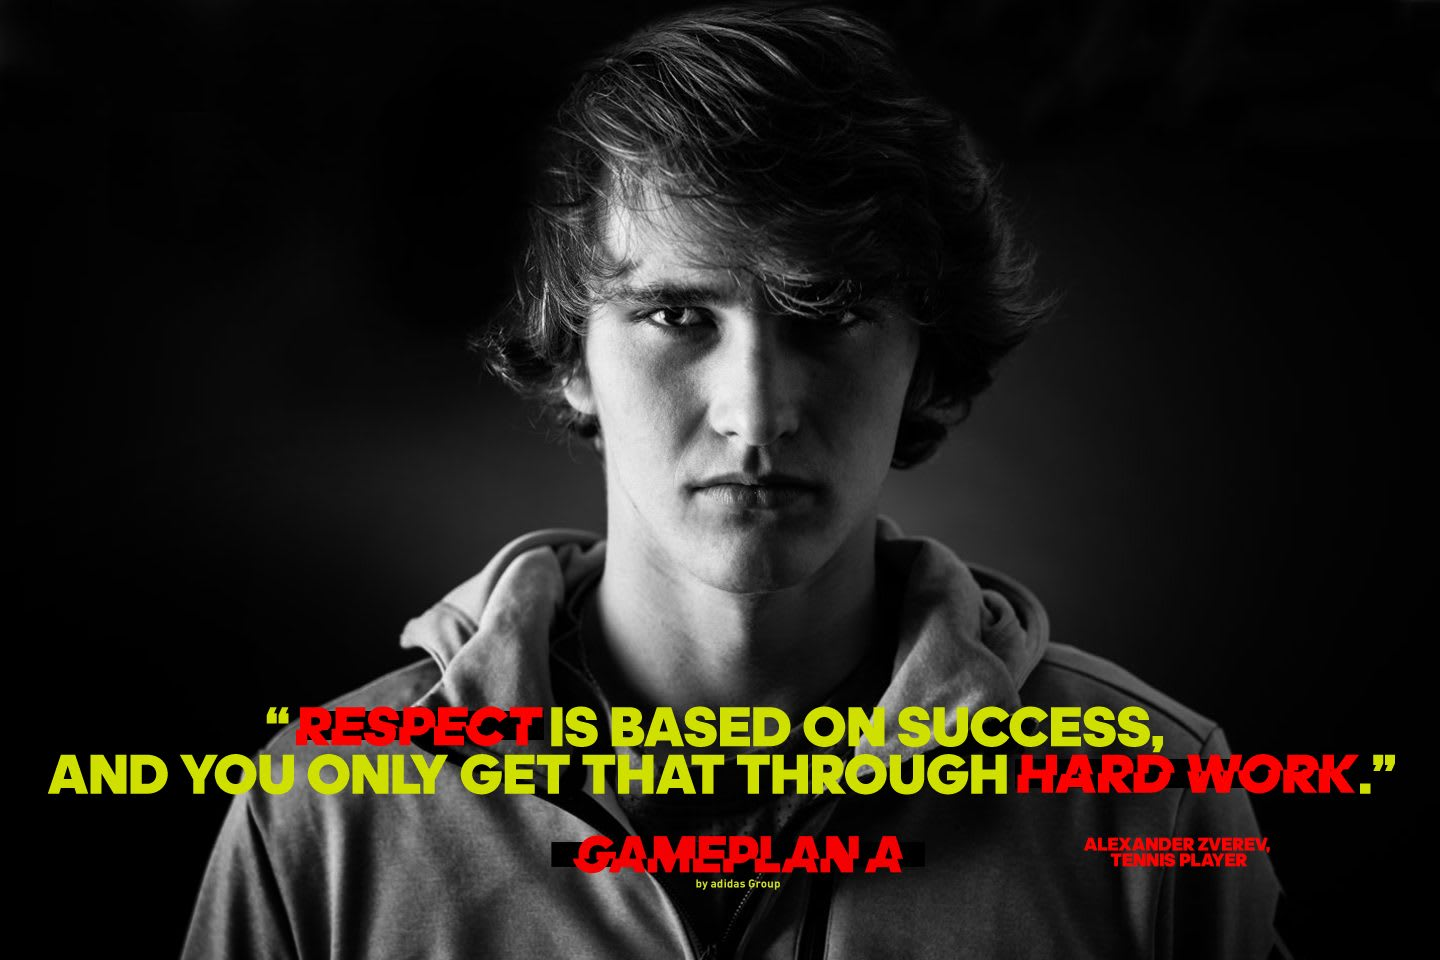 alexander zverev tennisplayer quote